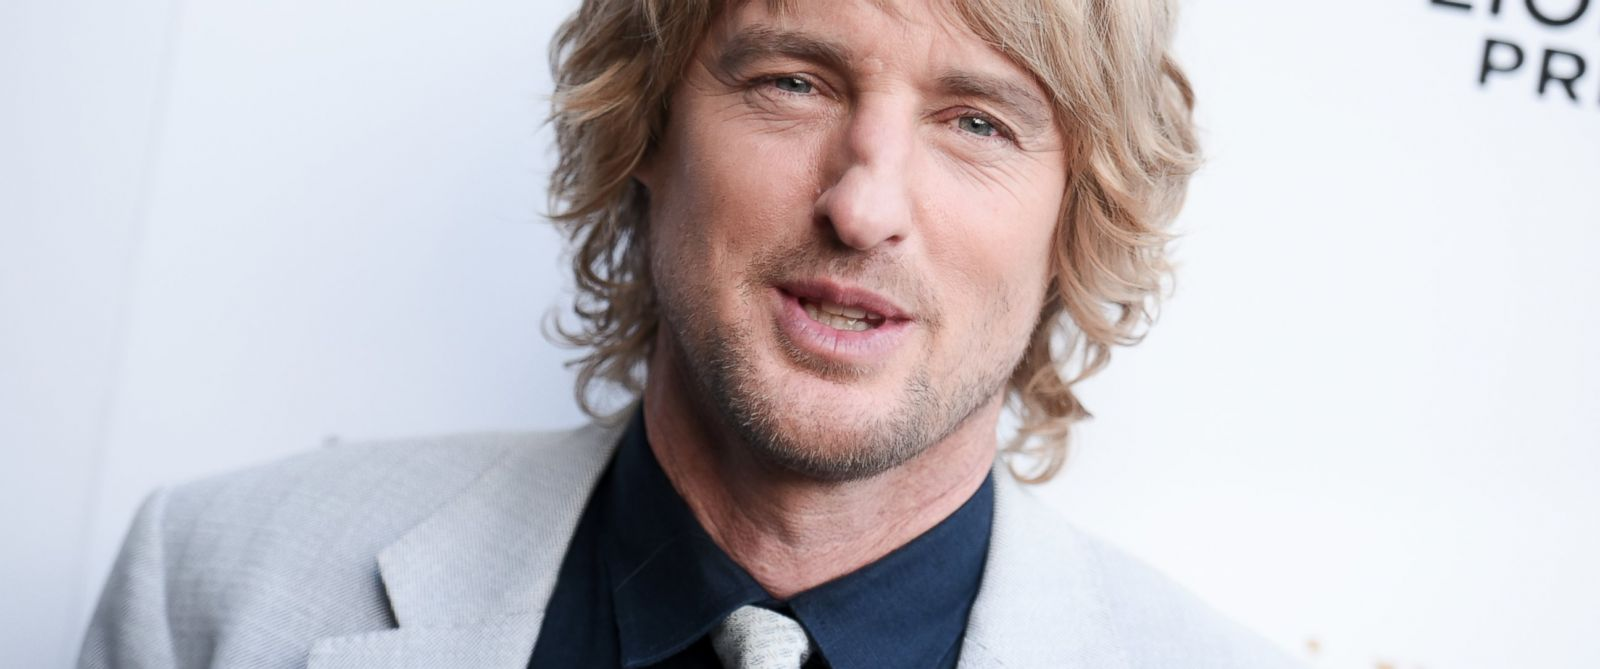 owen wilson zoolanderowen wilson фильмы, owen wilson wow, owen wilson movies, owen wilson instagram, owen wilson films, owen wilson height, owen wilson filmleri, owen wilson skate, owen wilson imdb, owen wilson death, owen wilson no escape, owen wilson turtle, owen wilson brother actor, owen wilson movies list, owen wilson natal chart, owen wilson jackie chan, owen wilson zoolander, owen wilson jim carrey movie, owen wilson wiki, owen wilson wikipedia